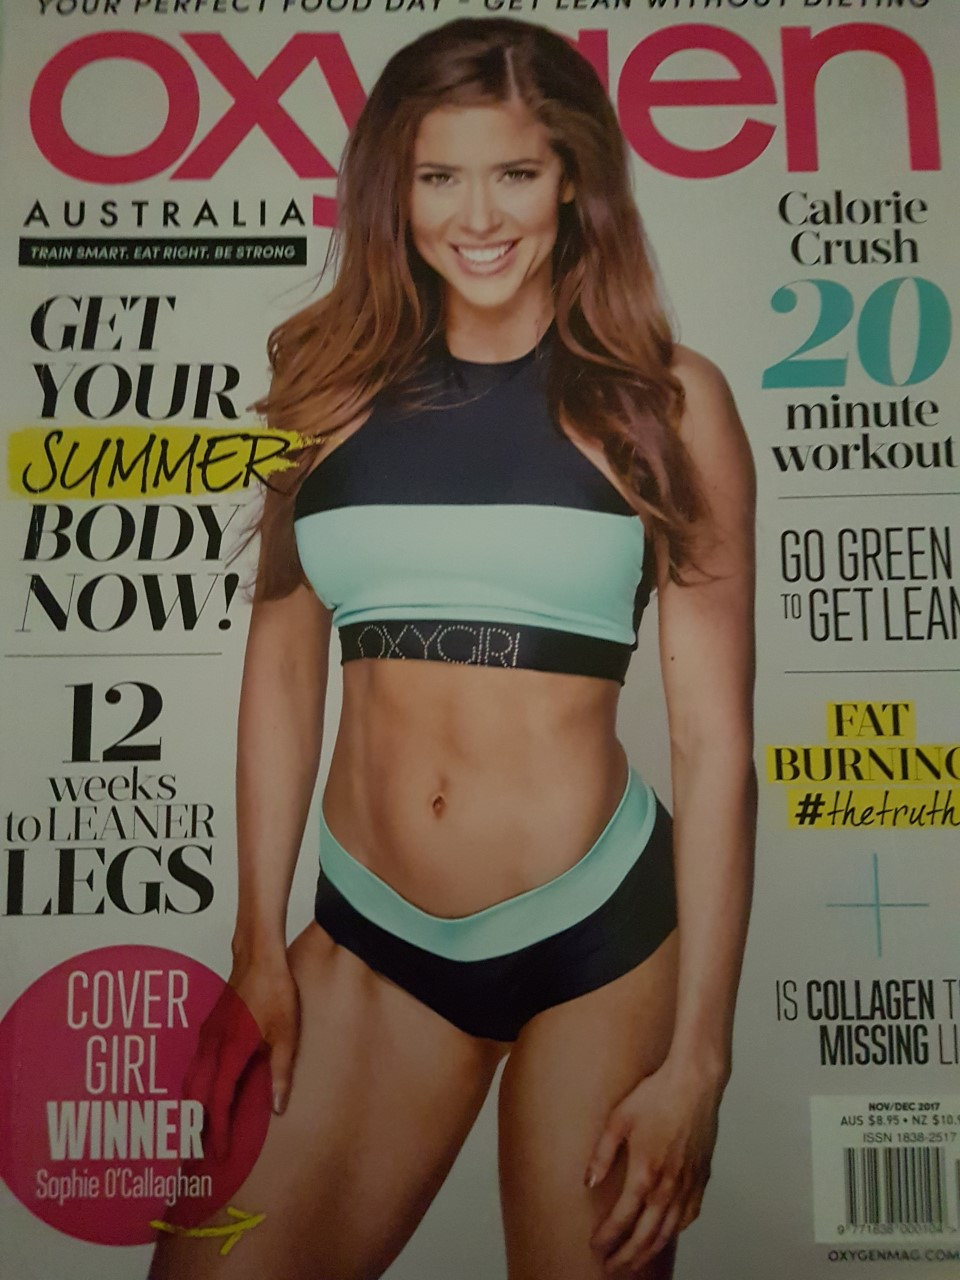 """""""I find Motivation 2 Conquer a very inspiring and motivating brand"""".                                    Quote: Sophie O'Callaghan. Covergirl Oxygen Magazine Australia."""